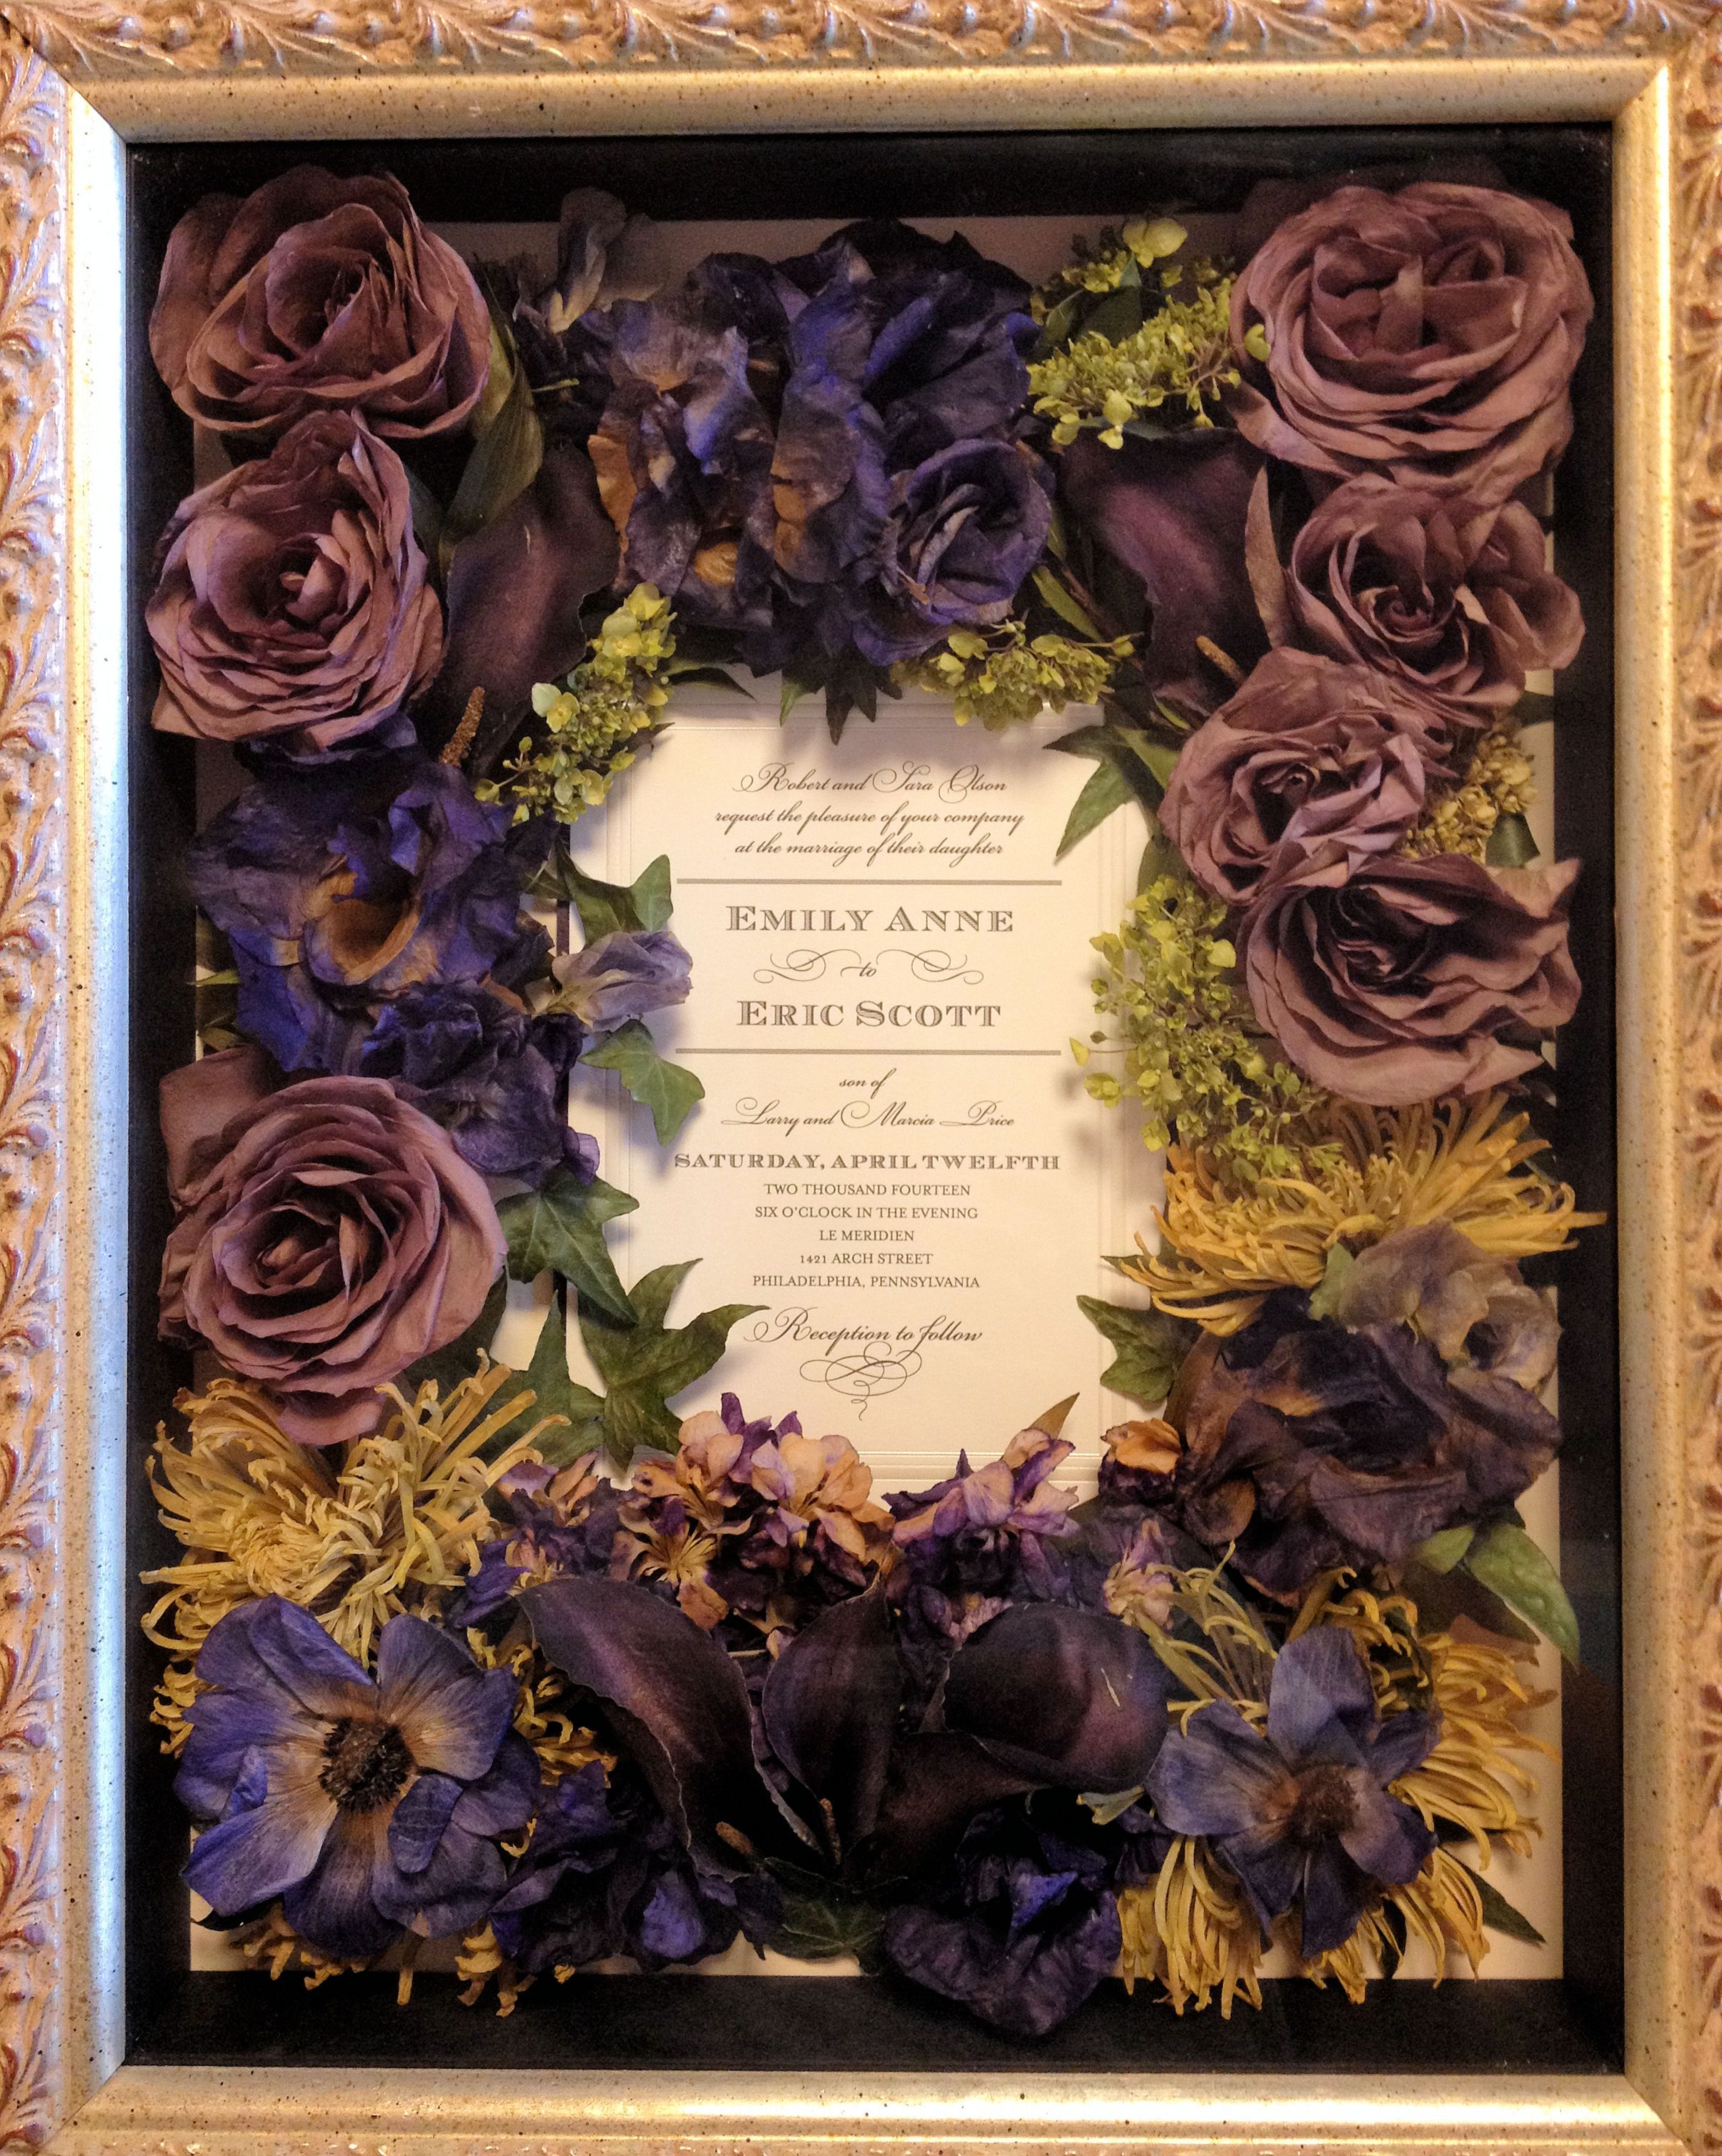 Wedding bouquet preserved flower shadow box by leigh florist wedding bouquet preserved flower shadow box by leigh florist httpleighflorist solutioingenieria